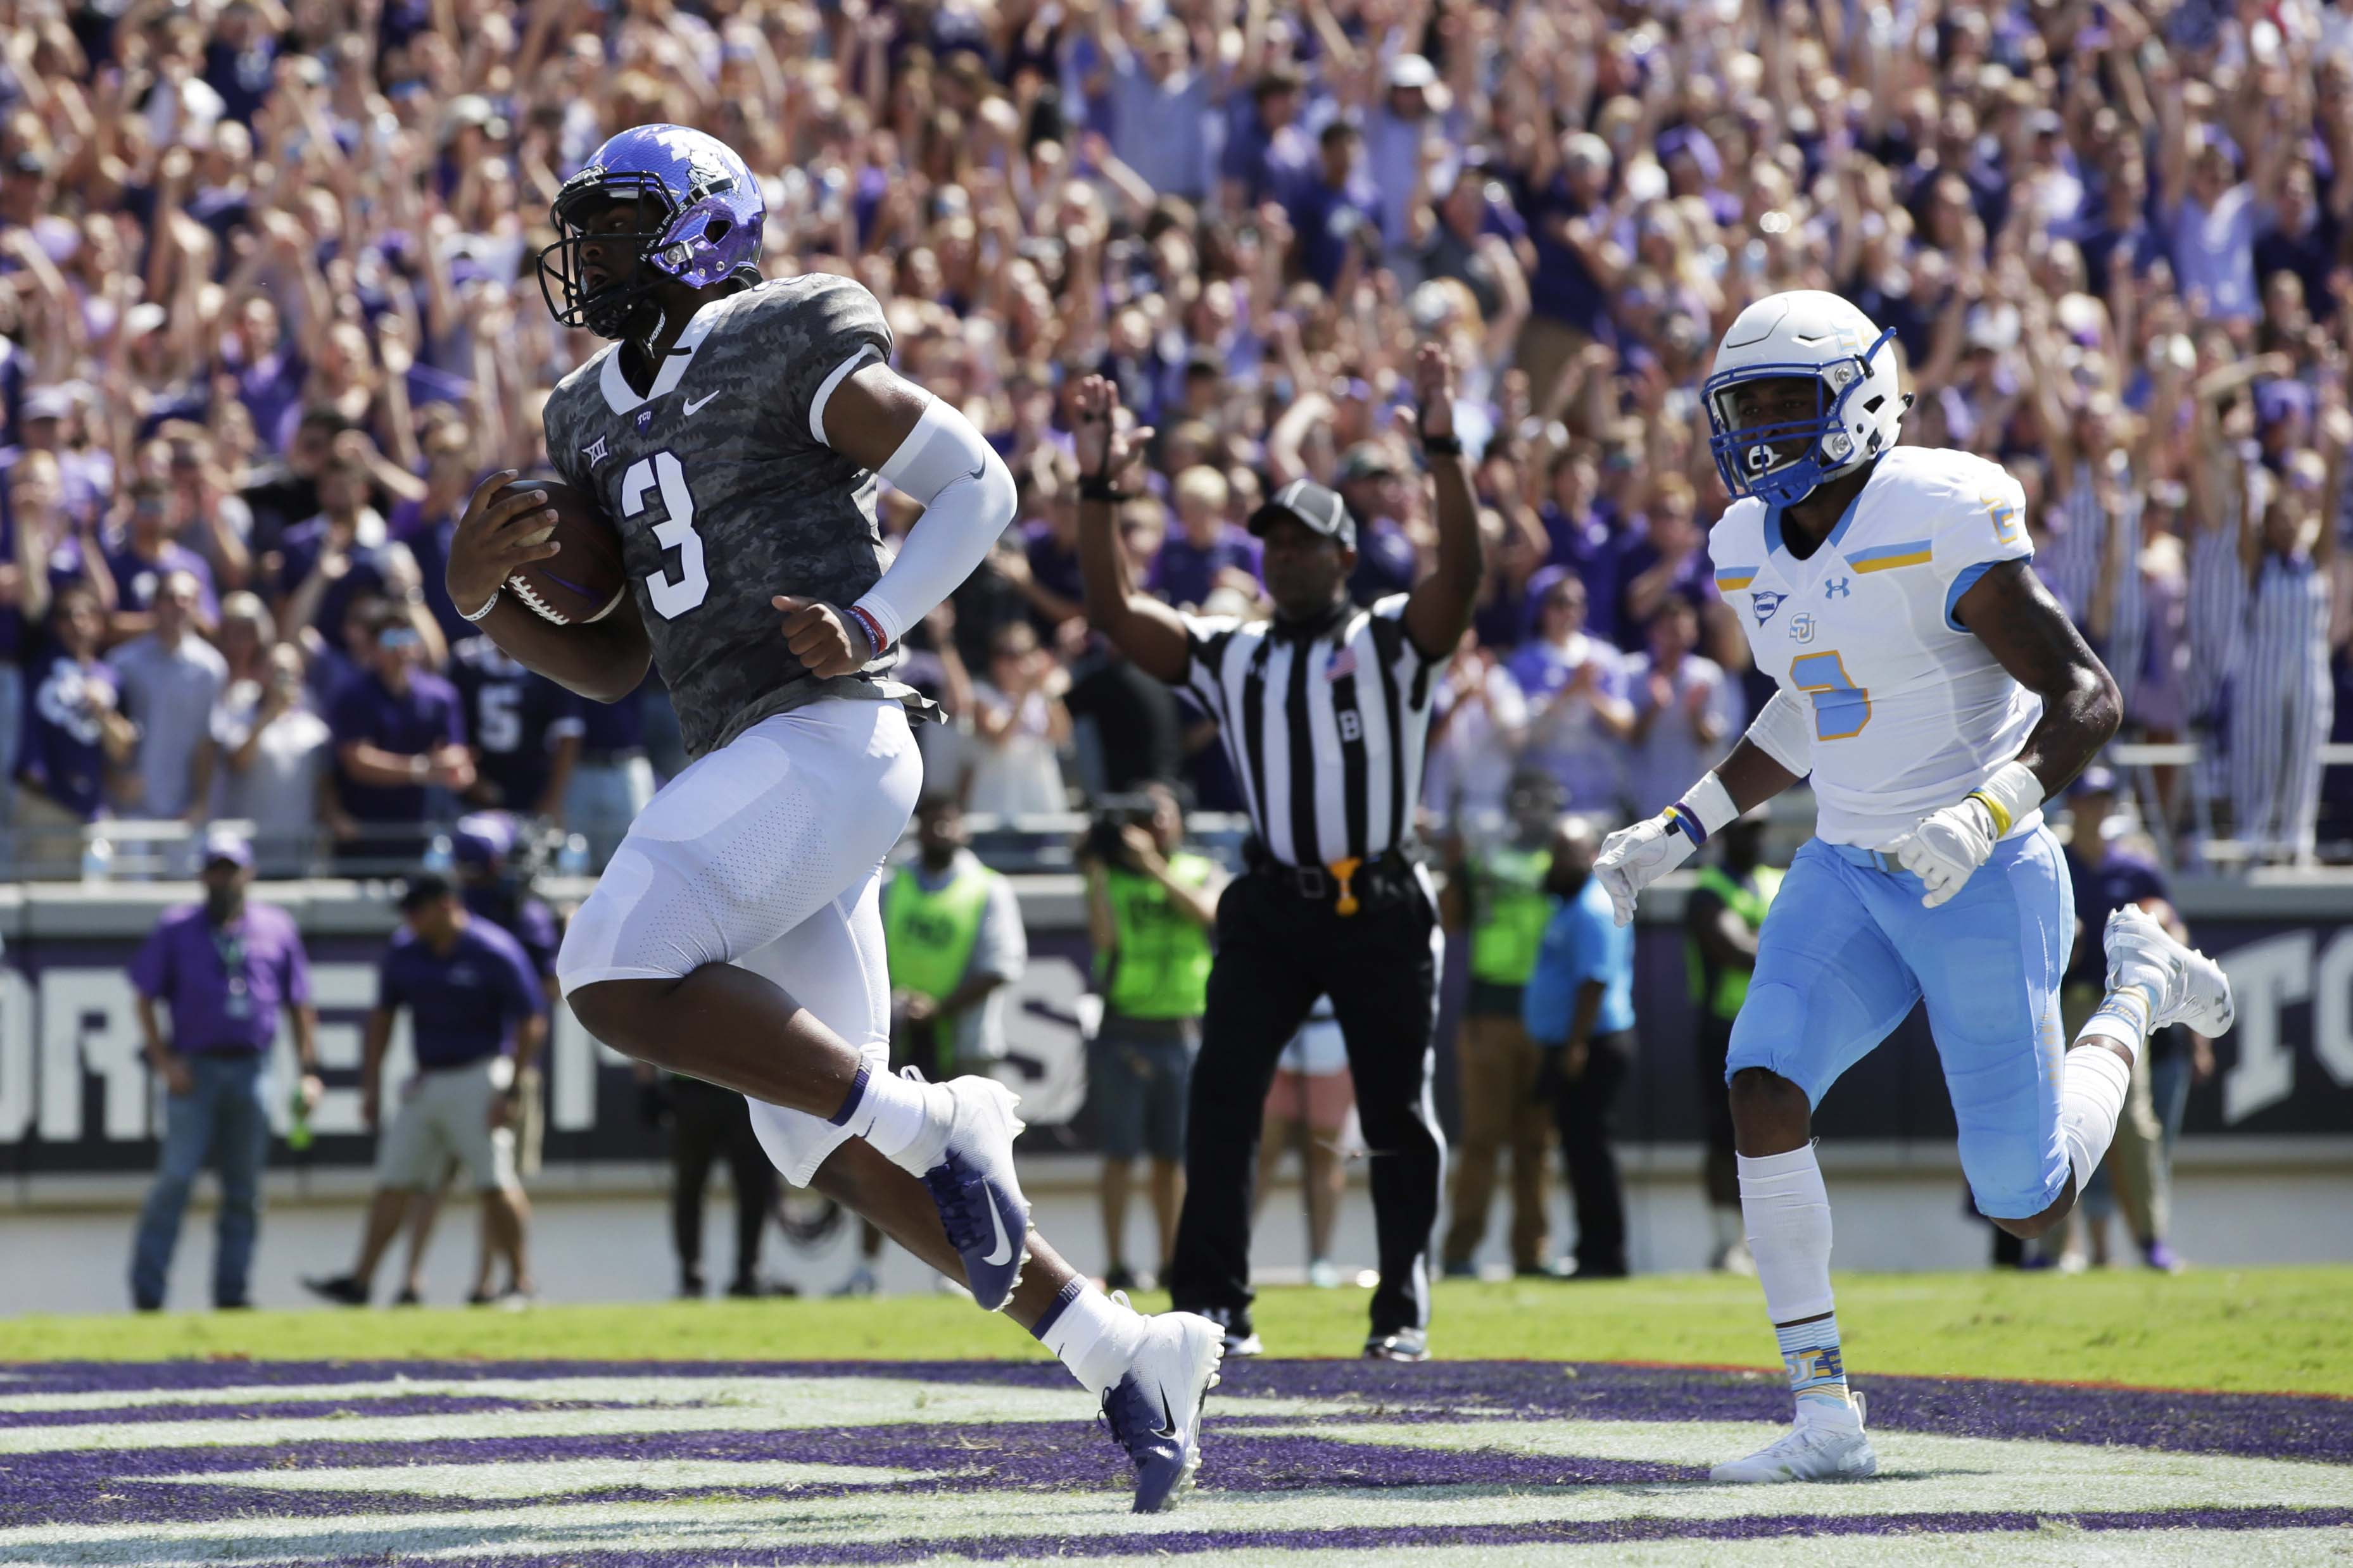 Sep 1, 2018; Fort Worth, TX, USA; TCU Horned Frogs quarterback Shawn Robinson (3) scores a touchdown in the first quarter against the Southern University Jaguars at Amon G. Carter Stadium. Mandatory Credit: Tim Heitman-USA TODAY Sports